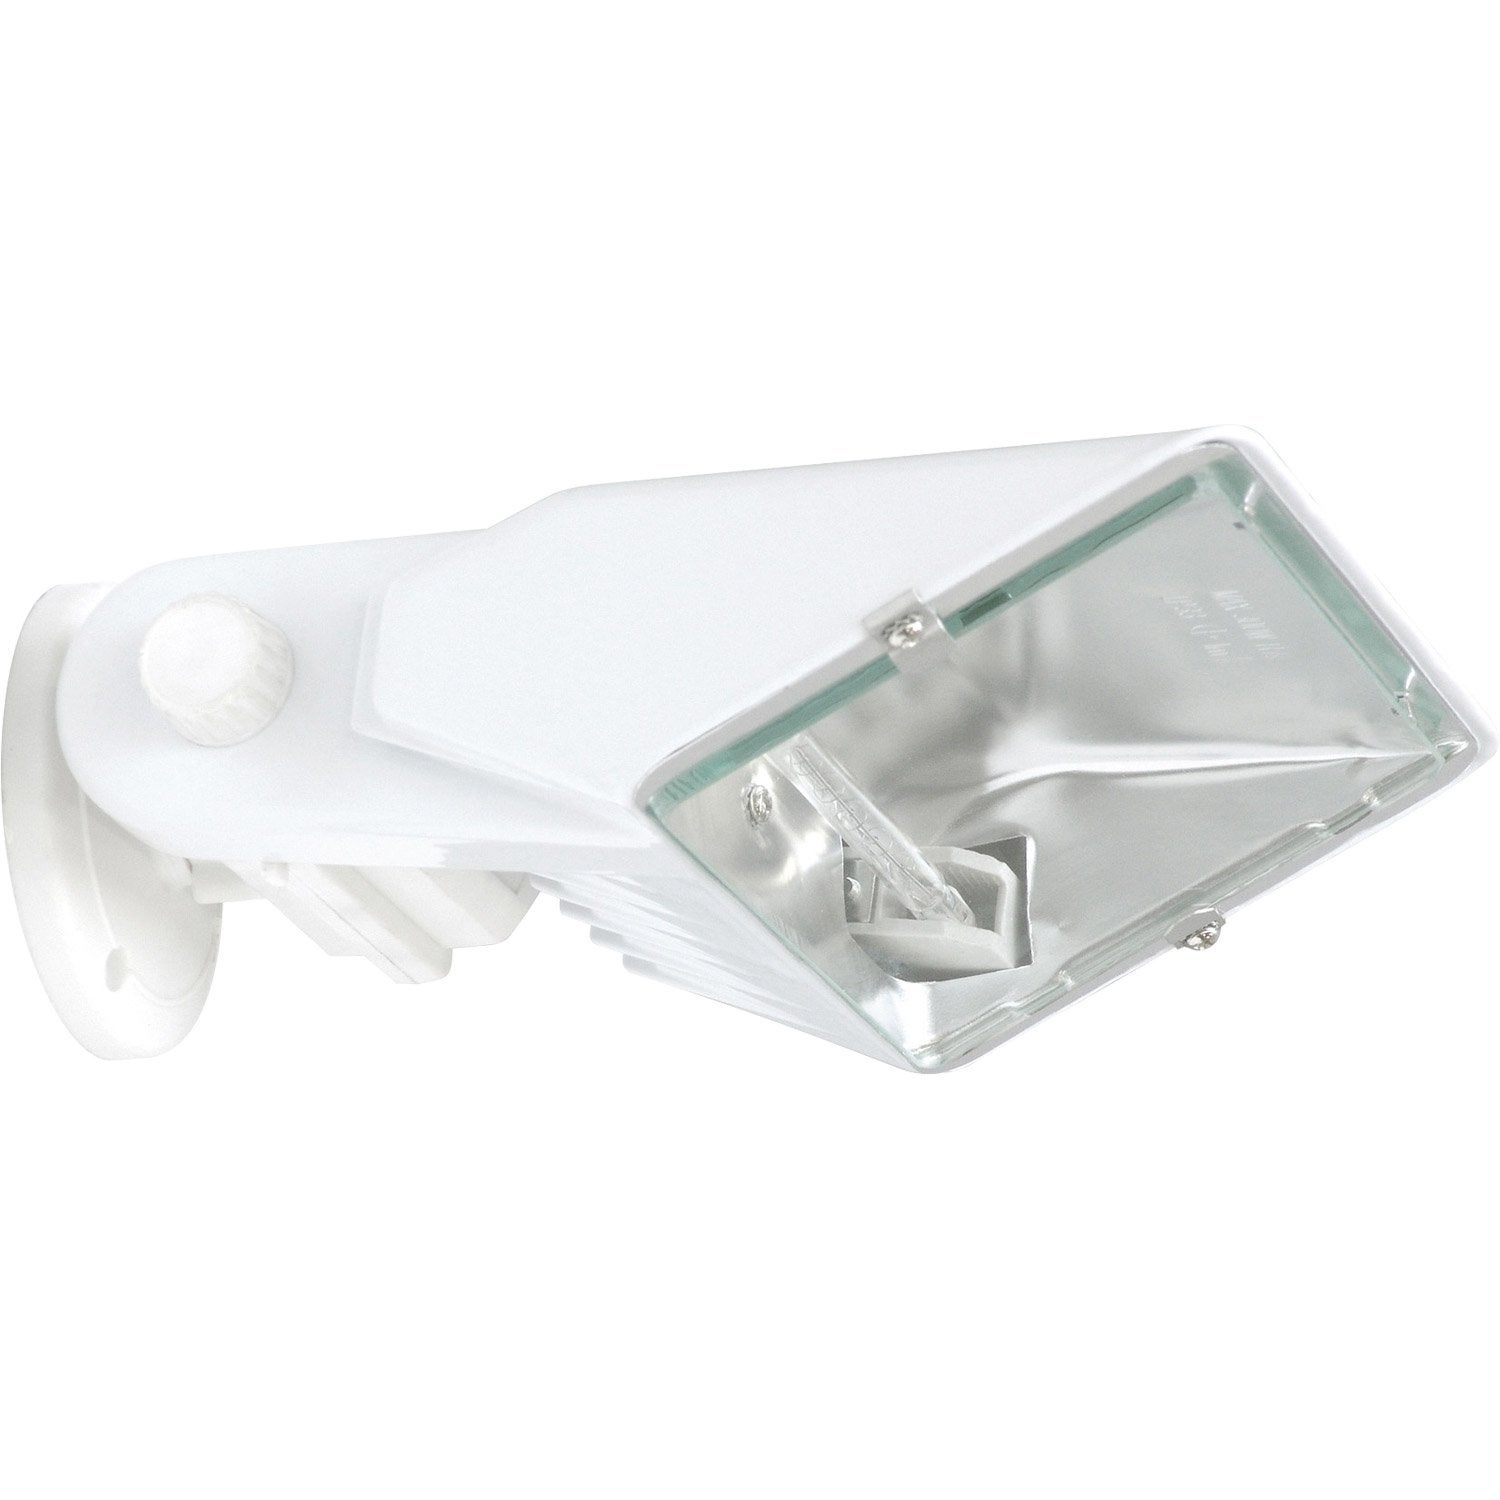 Projecteur fixer ext rieur r7s 118 mm 300 w blanc for Halogene exterieur